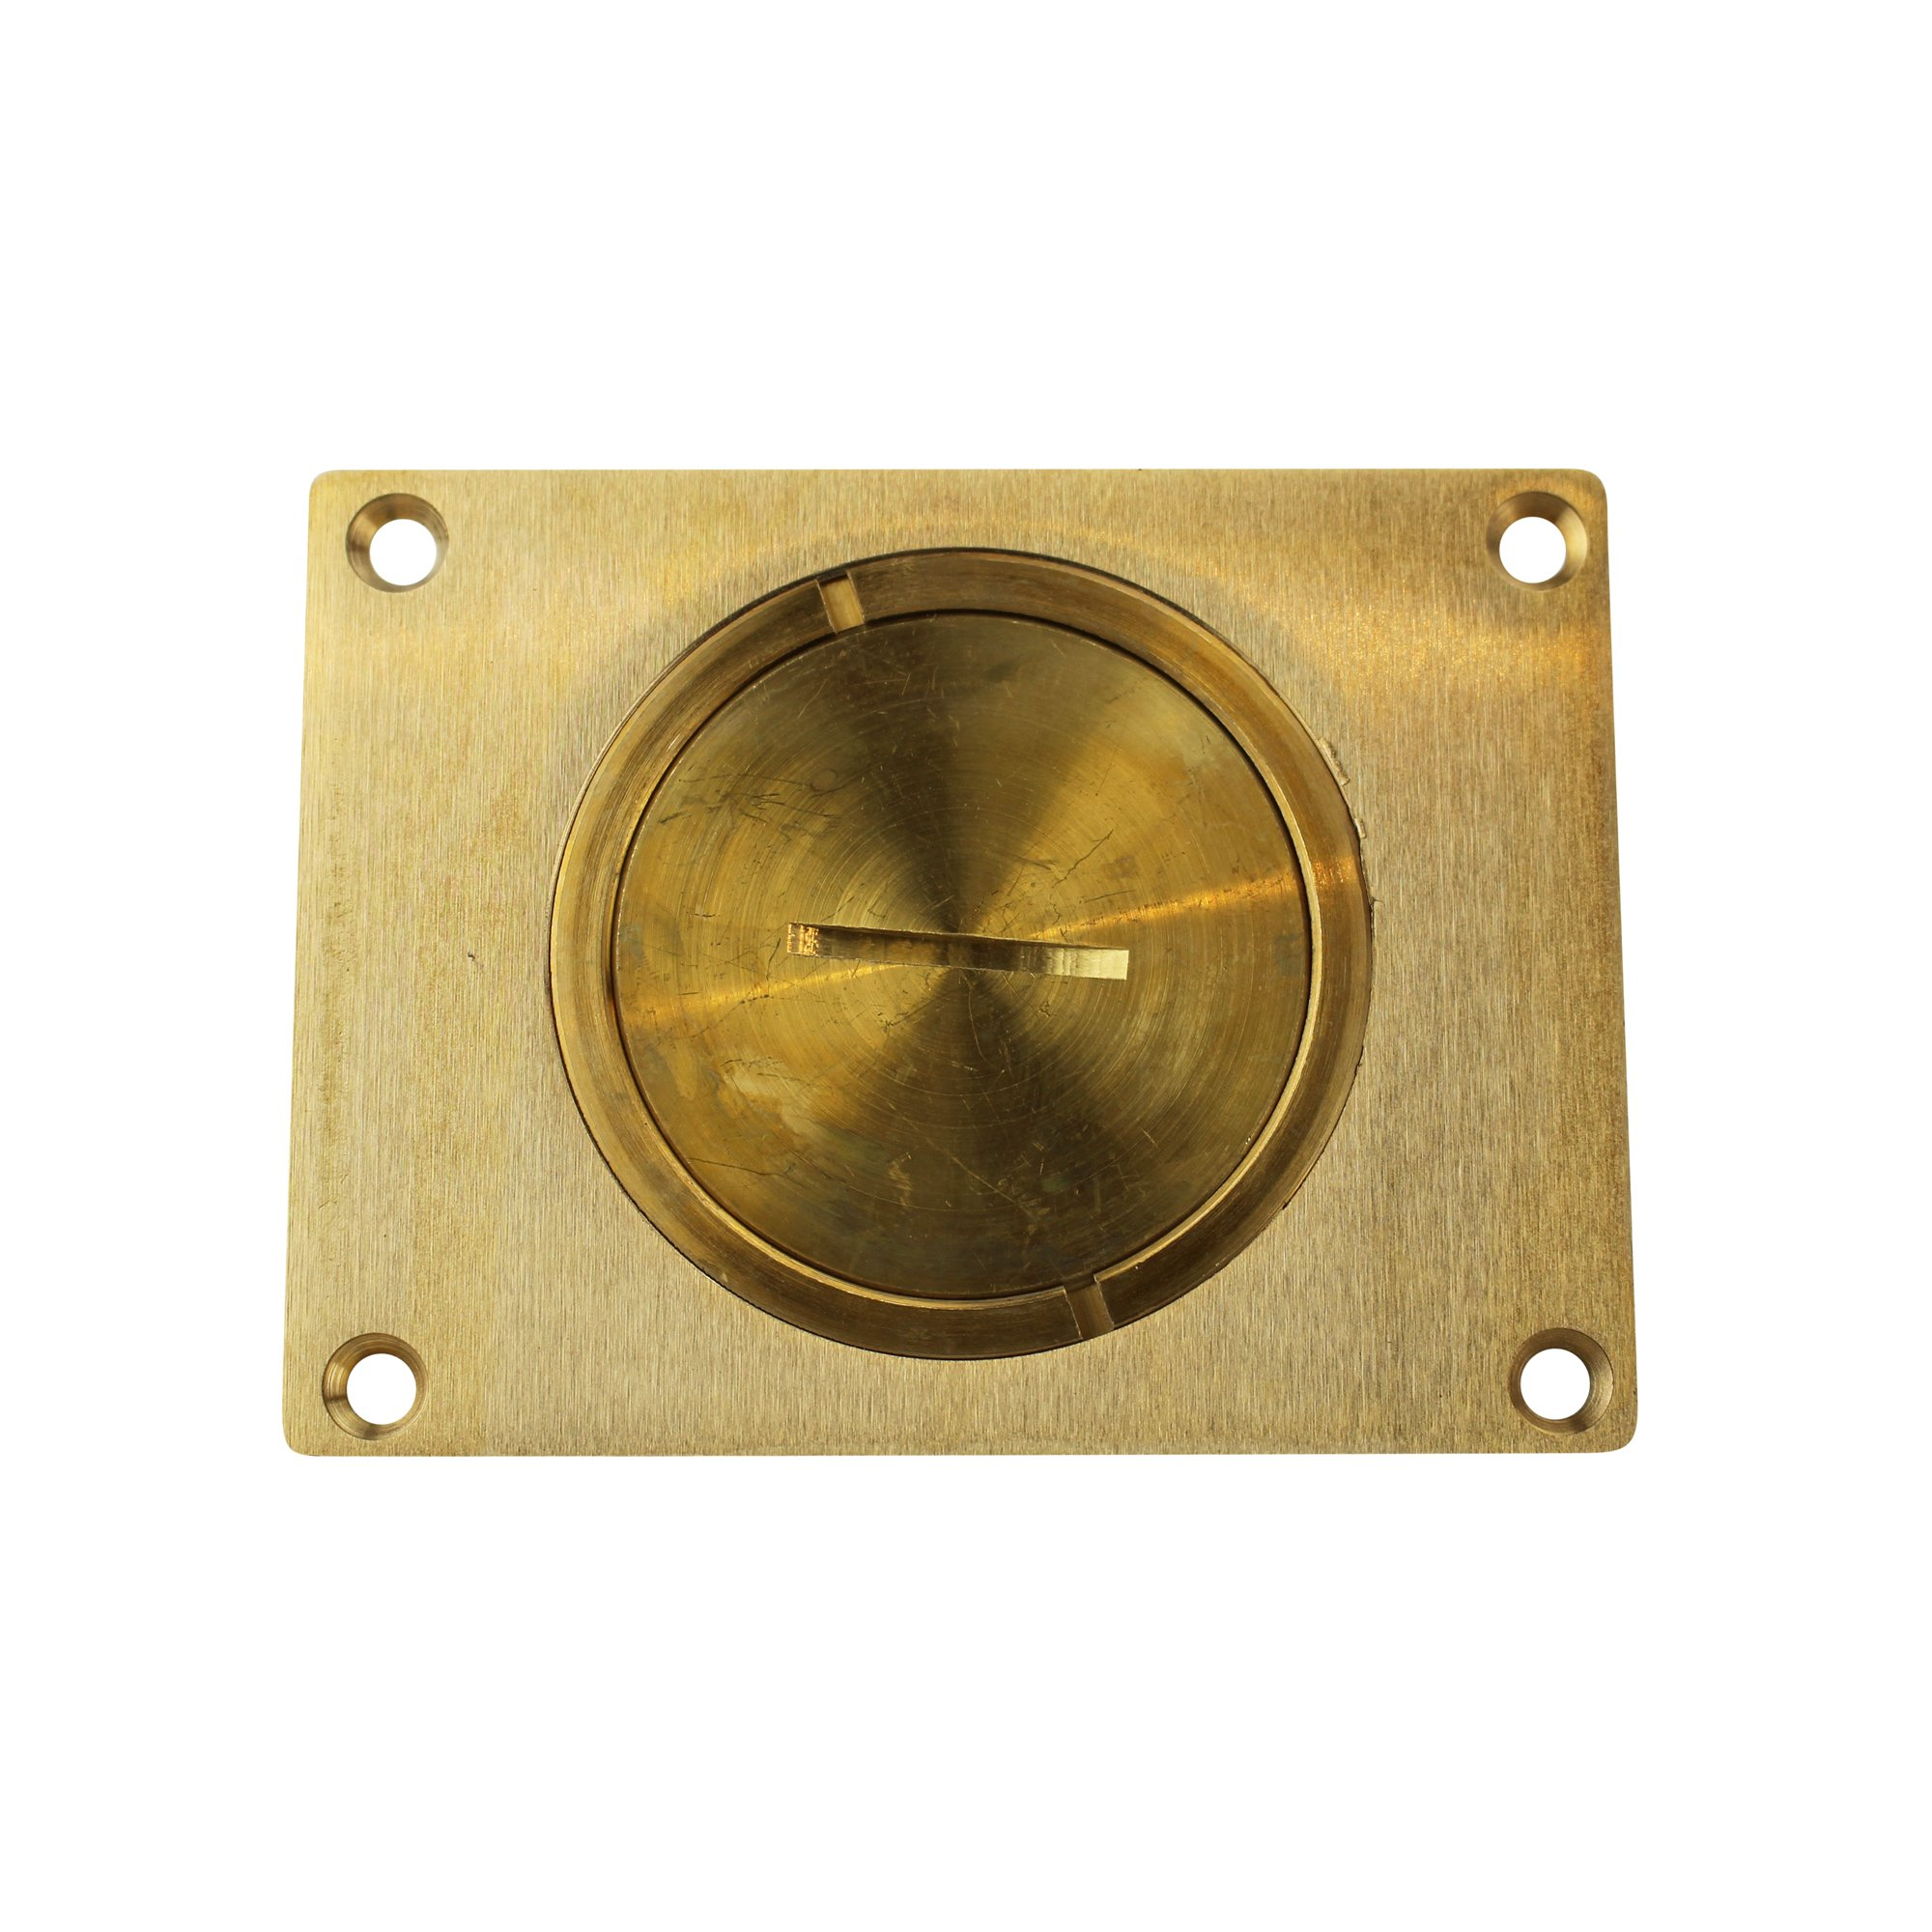 Wiremold 829CK Brass 1-Gang Rectangular Communication Cover Plate 4-3/16 Inch x 3-1/8 Inch Brown